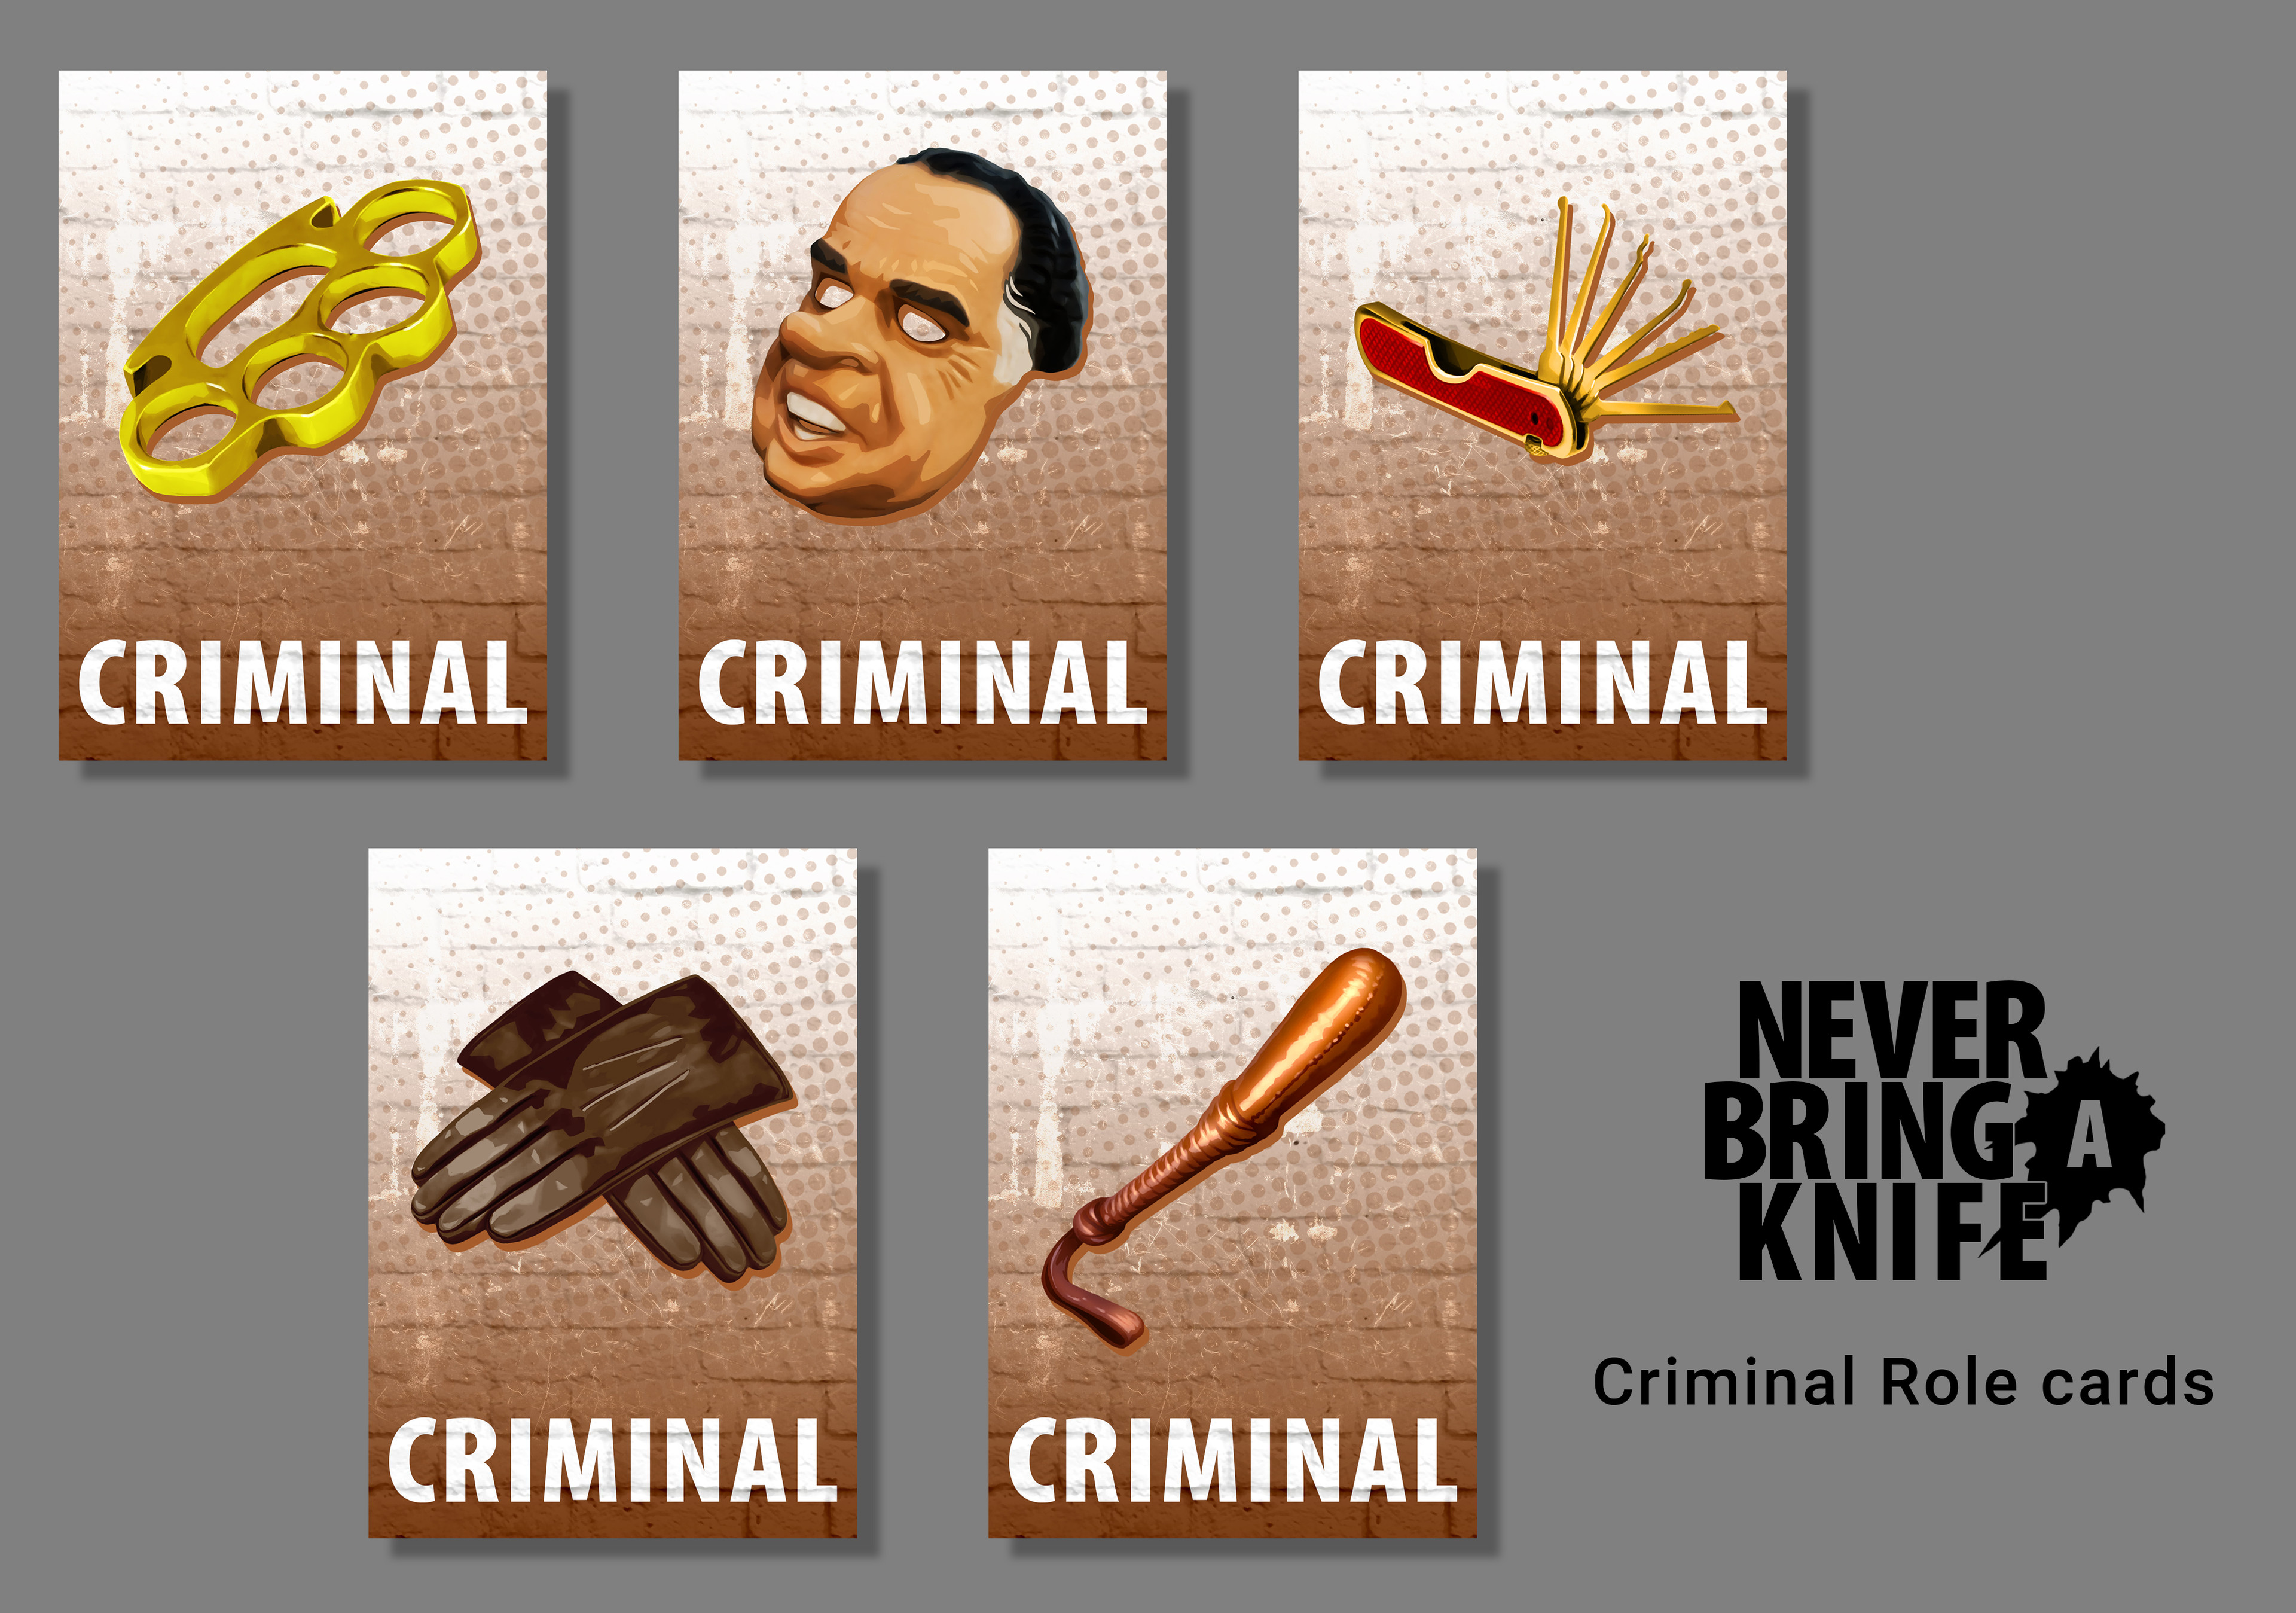 Criminal Role cards for the Never Bring a Knife card game from Atlas Games.